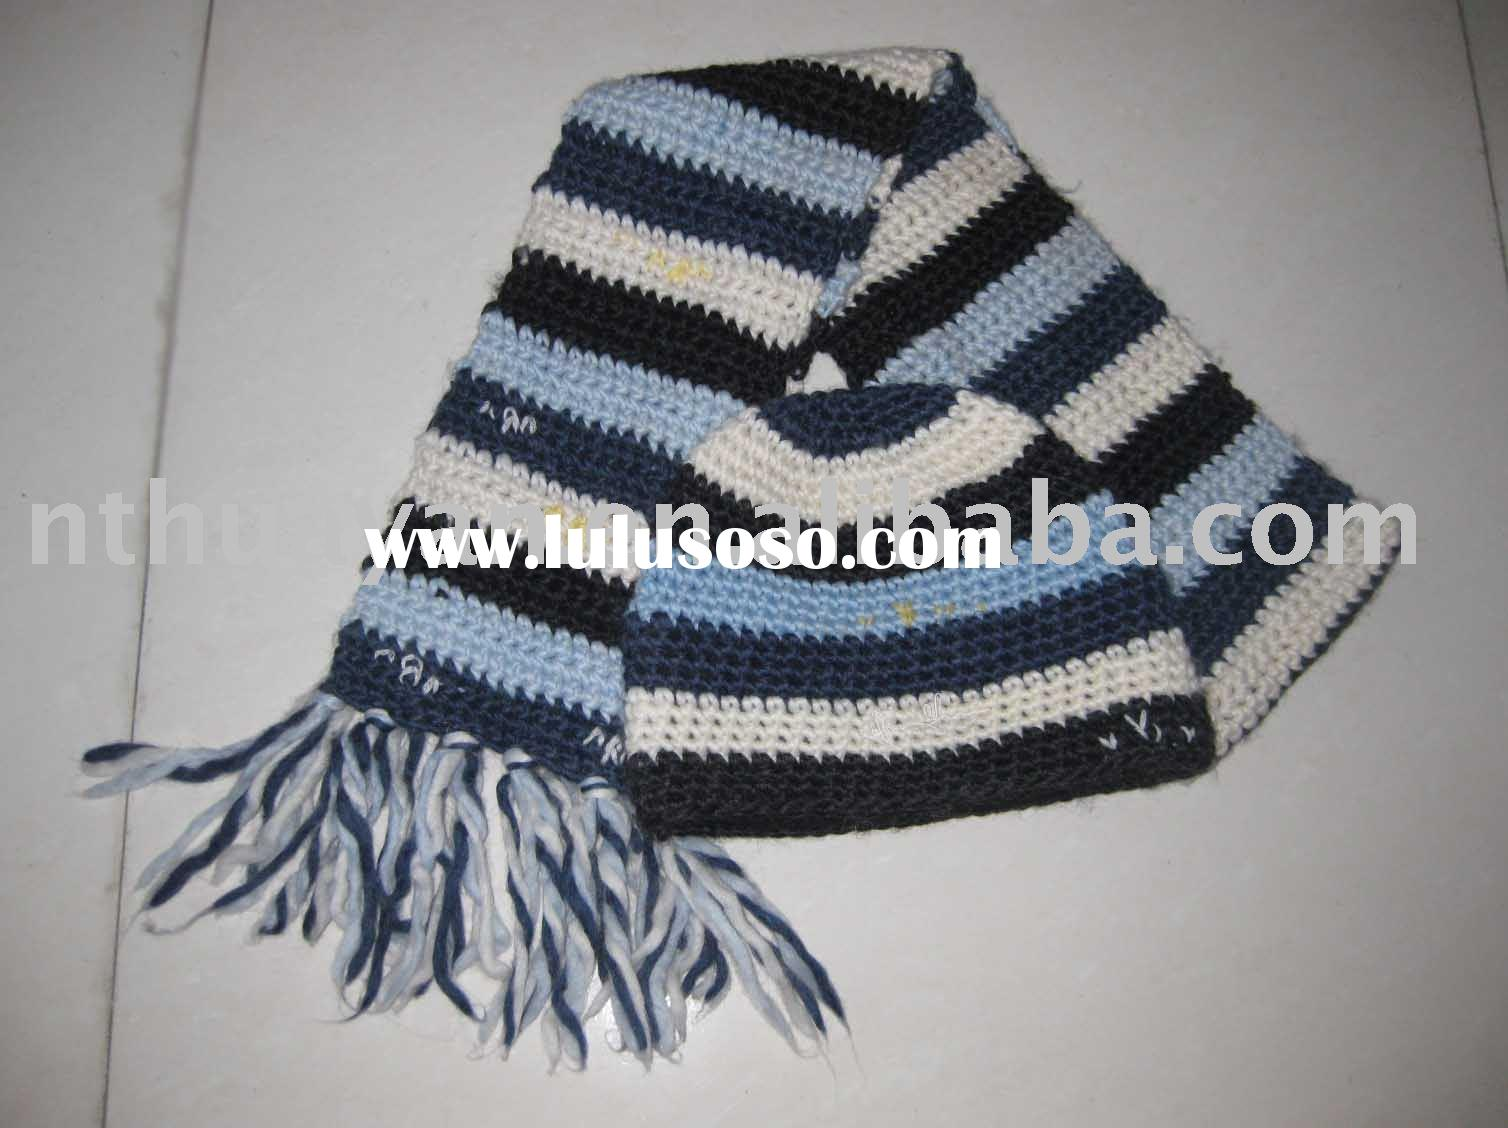 Crochethatsscarfsetsjpg Crochet Hats And Scarves For Kids Crochet Hats And Scarves For Kids